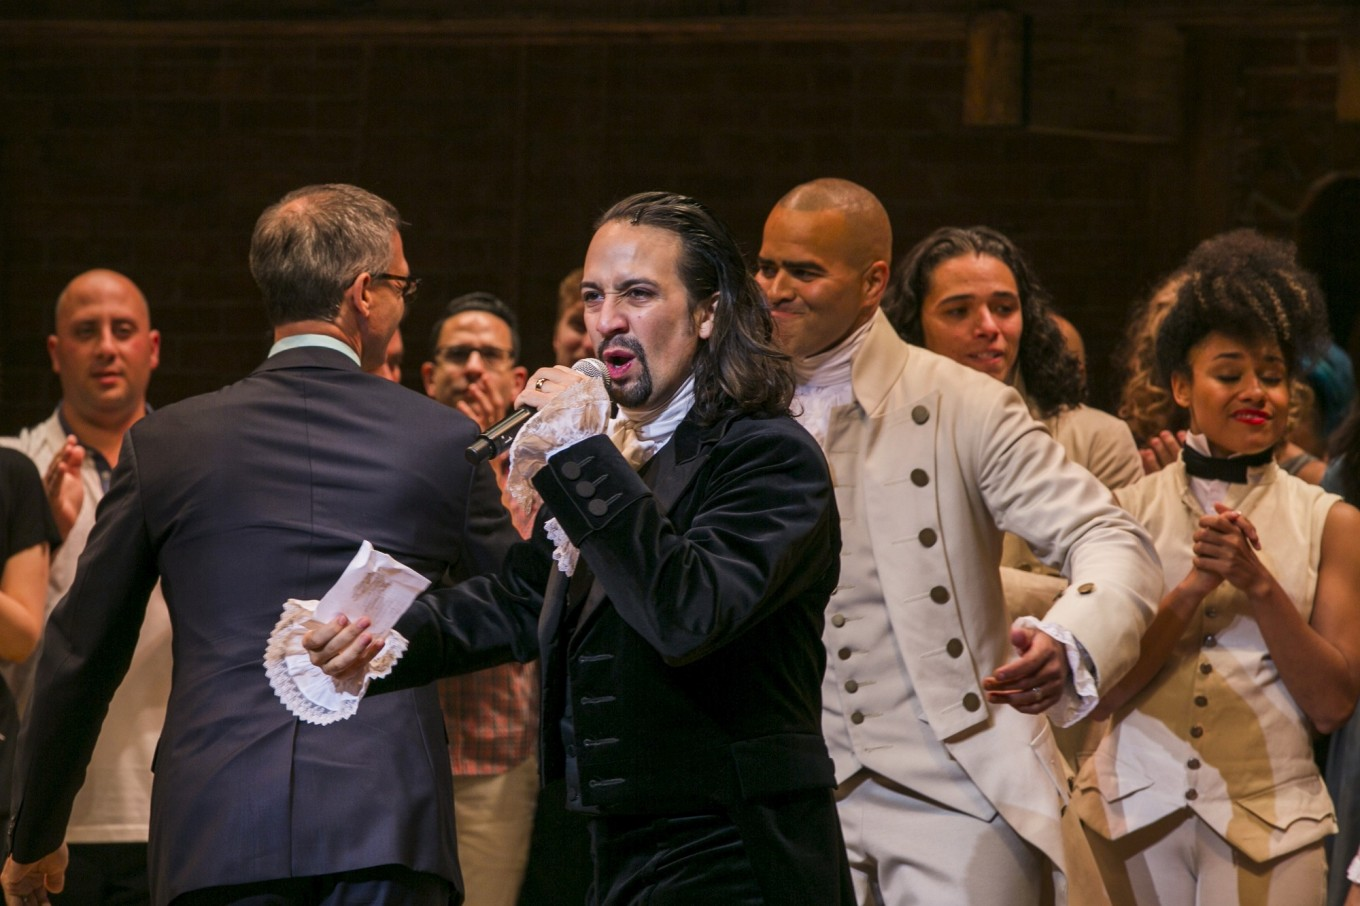 Broadway smash 'Hamilton' comes to Disney+ amid US reckoning on racism